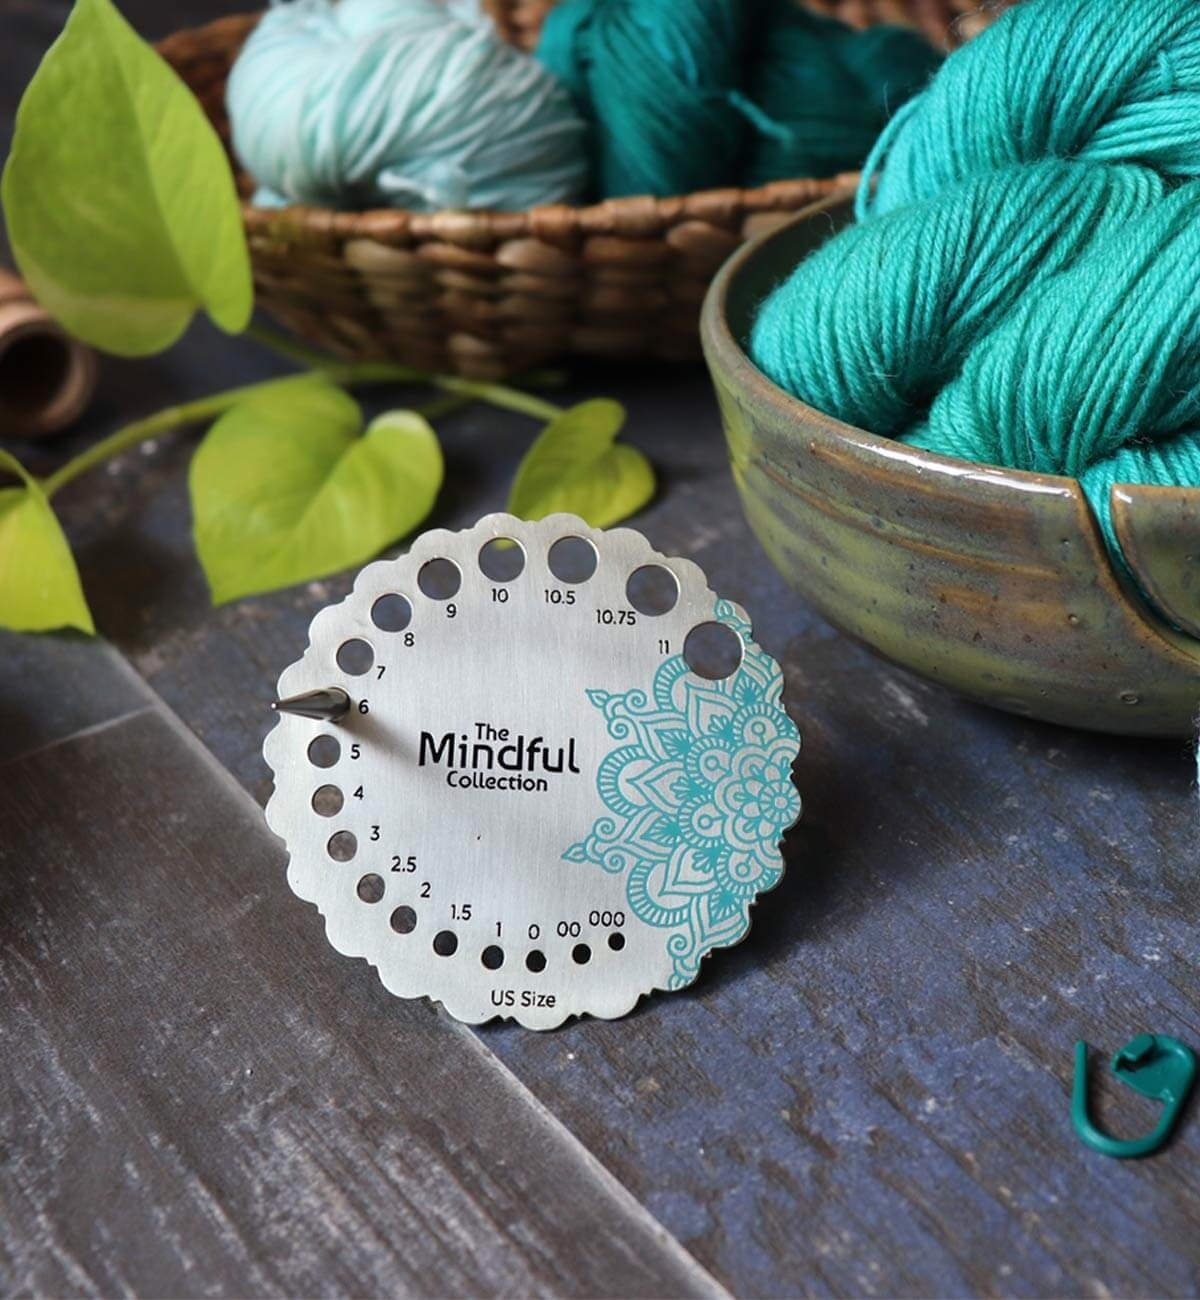 Knitter's Pride Mindful Collection Metal Needle Gauge